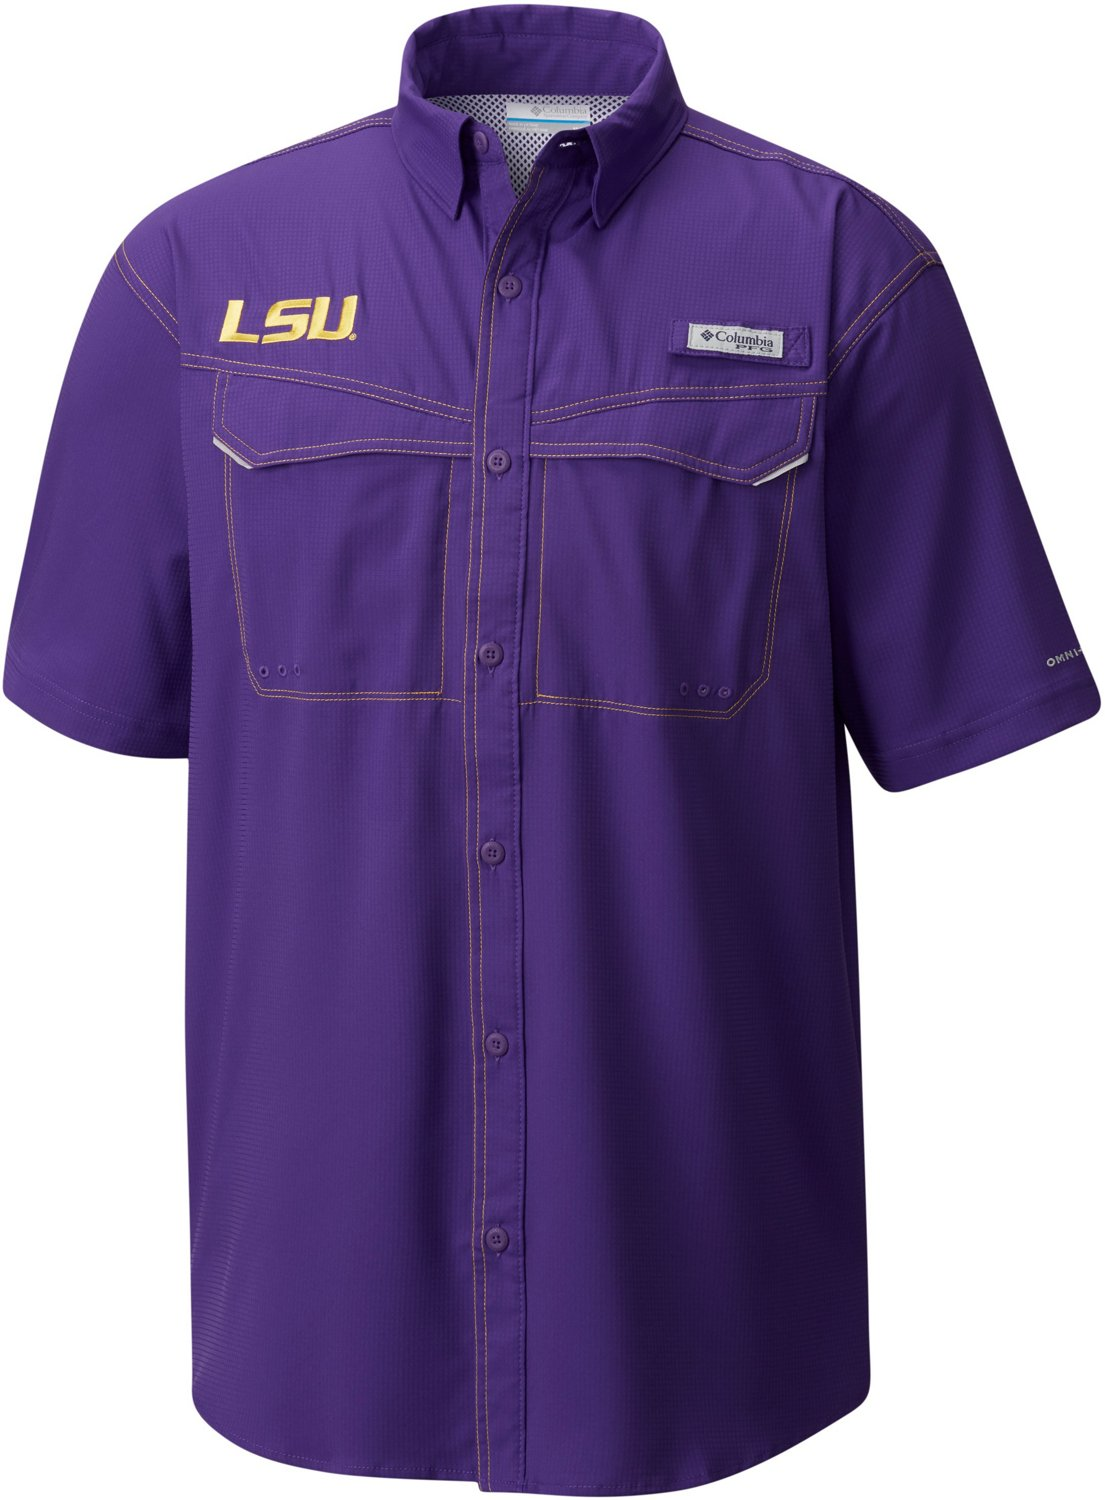 2143b19d5 Display product reviews for Columbia Sportswear Men's Louisiana State  University Low Drag Offshore Short Sleeve T